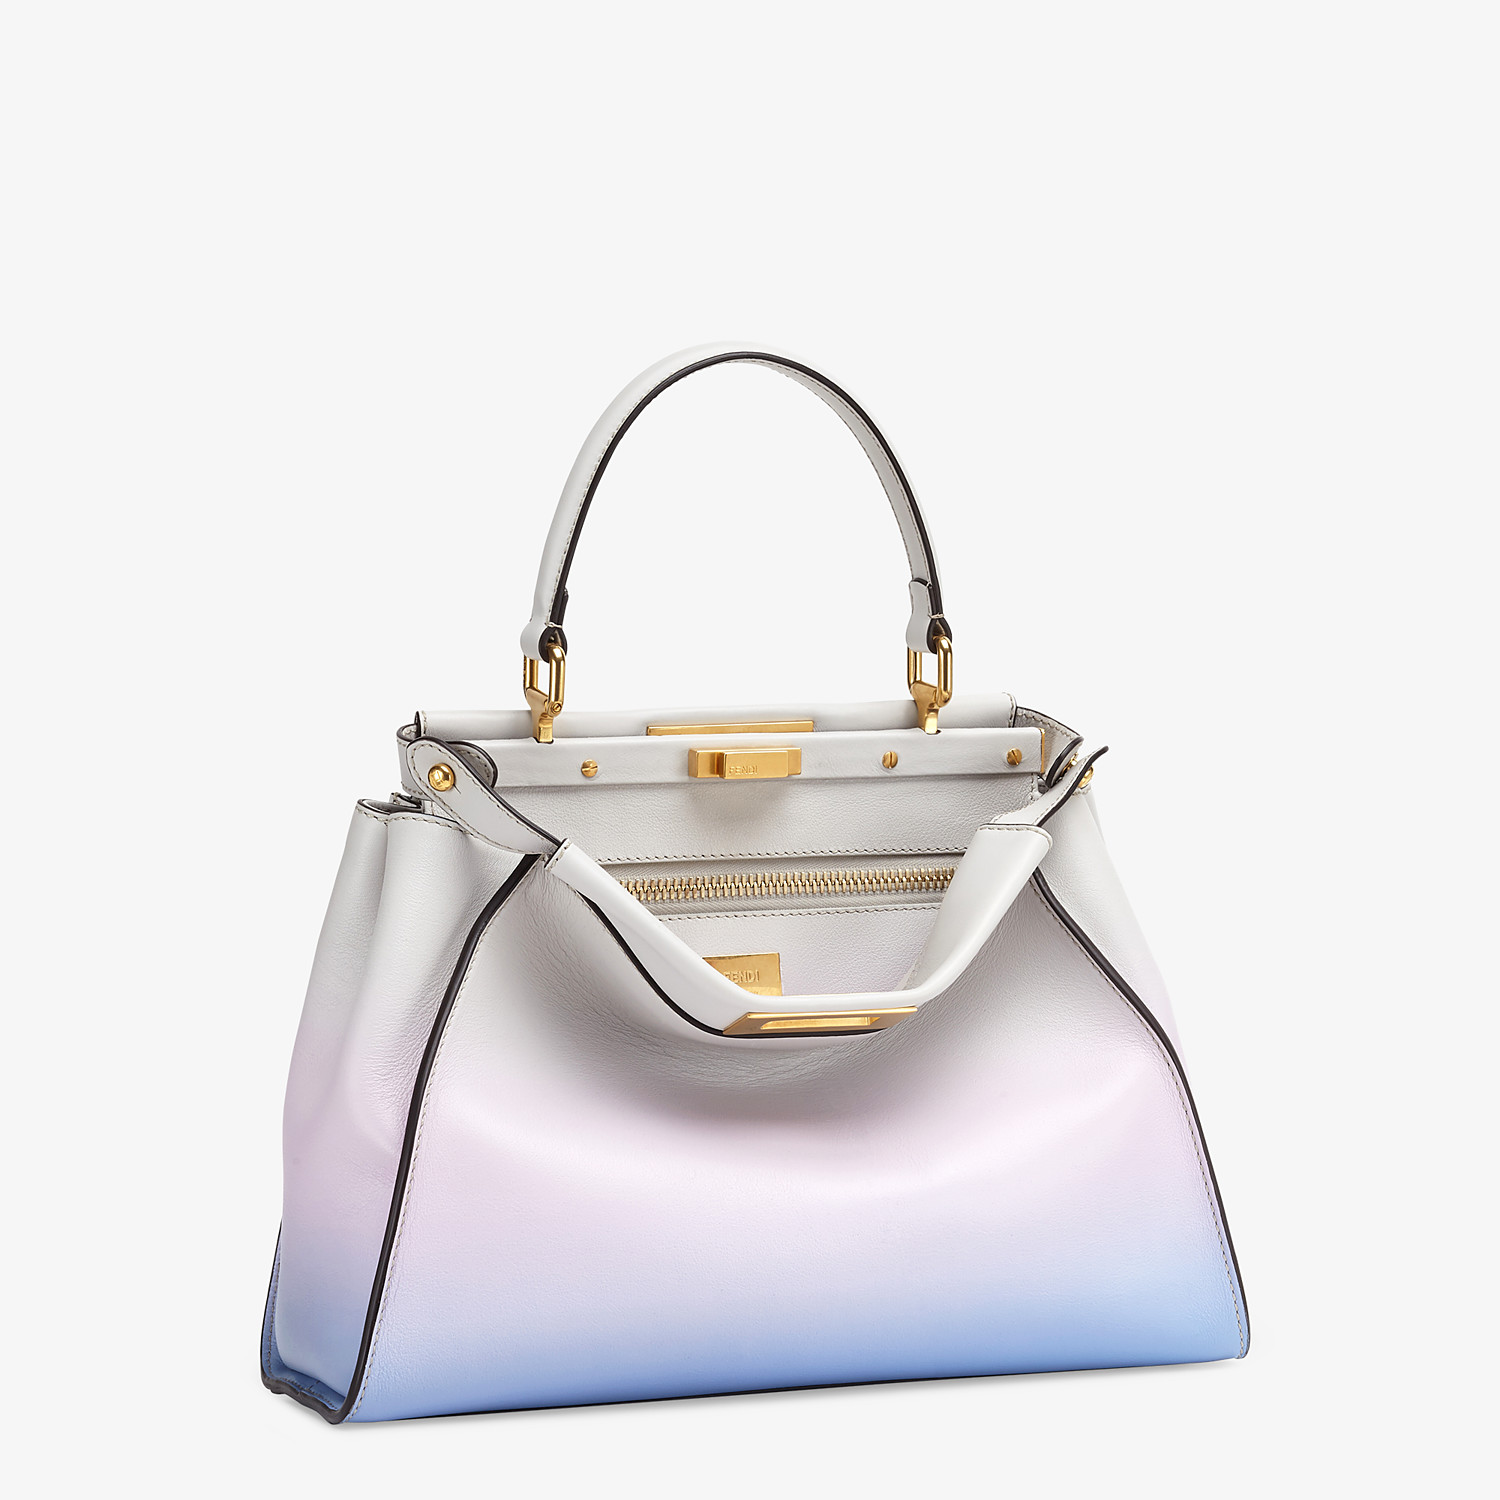 FENDI PEEKABOO ICONIC MEDIUM - Leather bag in graduated colors - view 3 detail